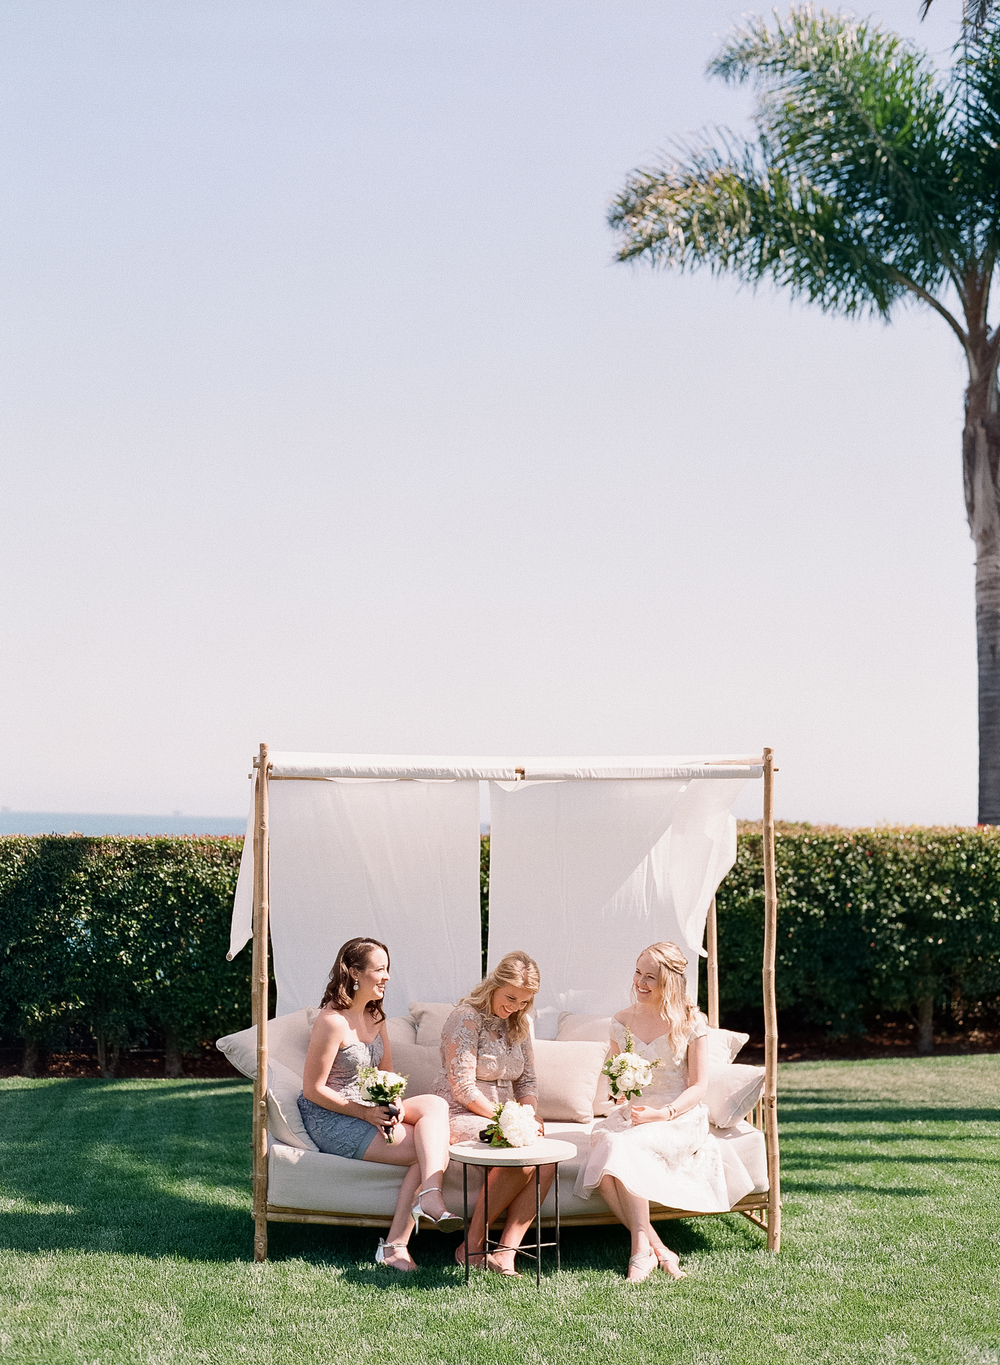 michellebeller.com | Private Estate Wedding in Santa Barbara | La Fete Weddings | Michelle Beller Photography | Santa Barbara Wedding Photographer